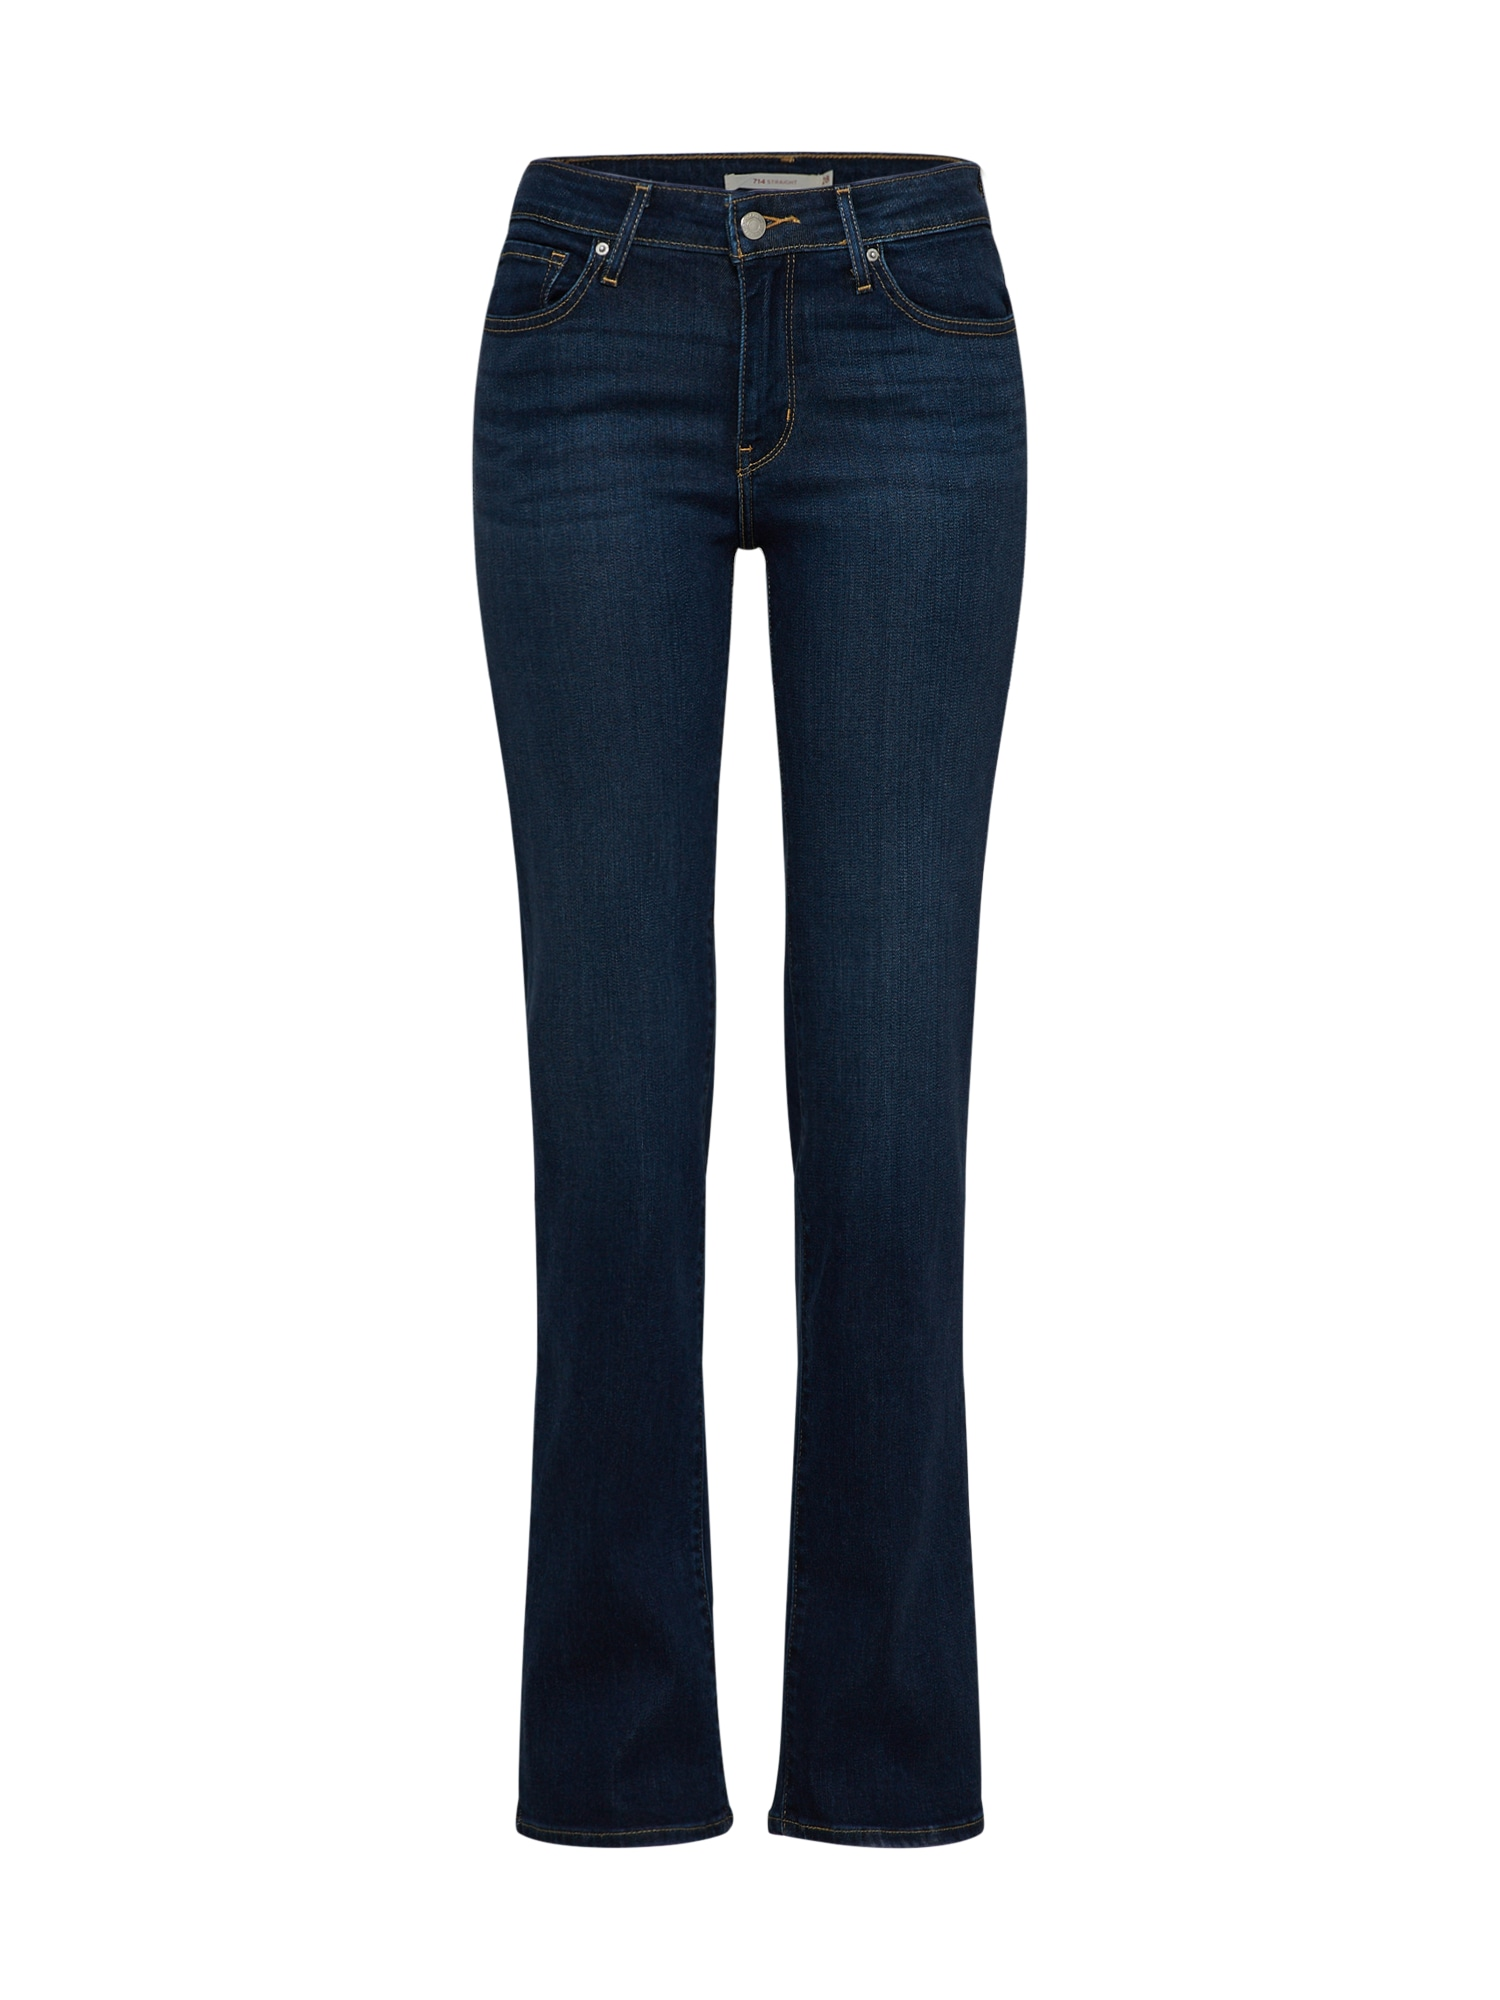 LEVI'S Dames Jeans 714™ STRAIGHT donkerblauw